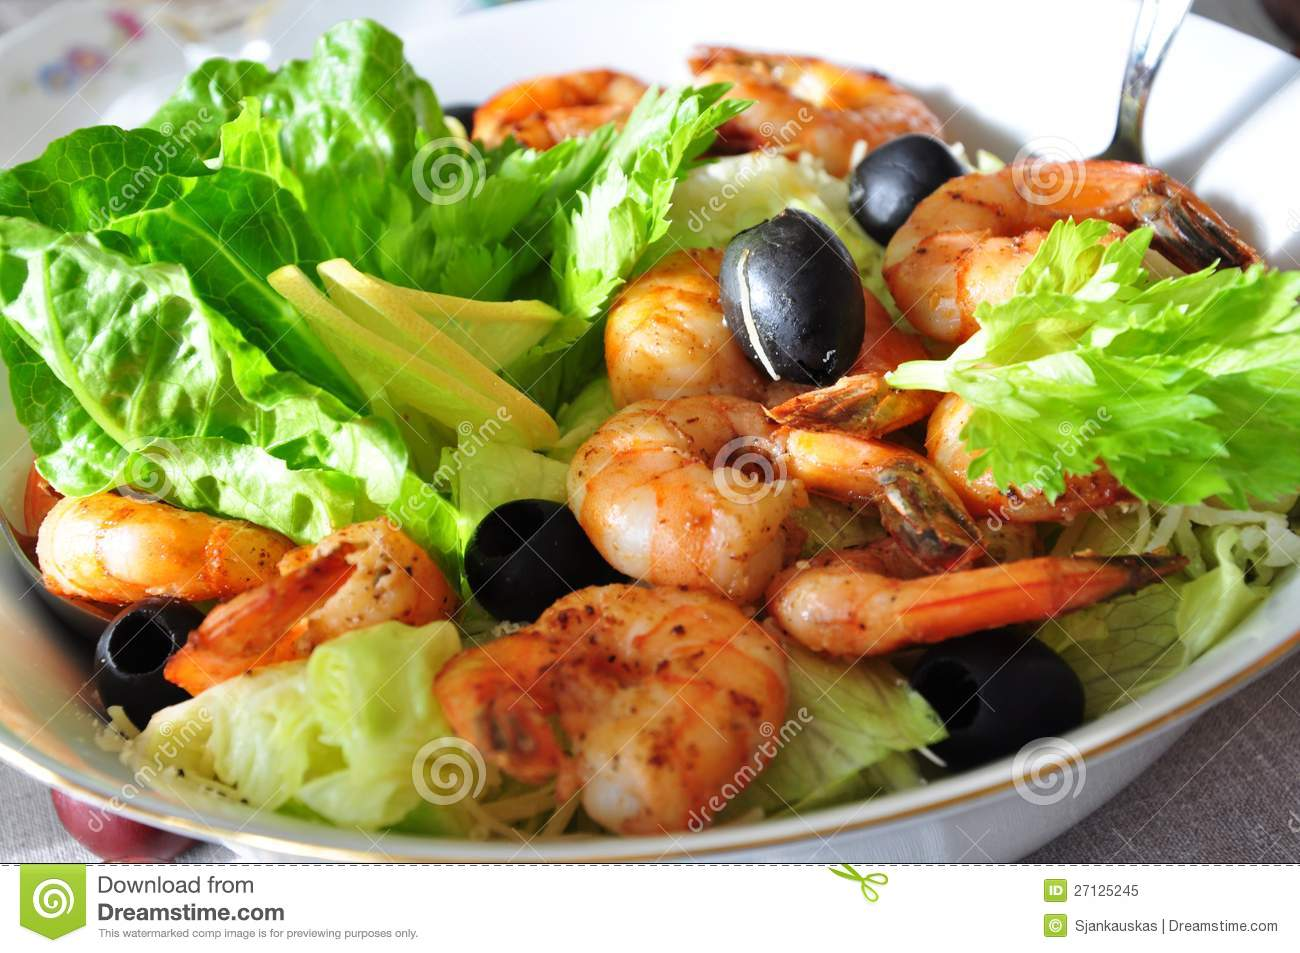 Shrimp Salad Royalty Free Stock Photo - Image: 27125245